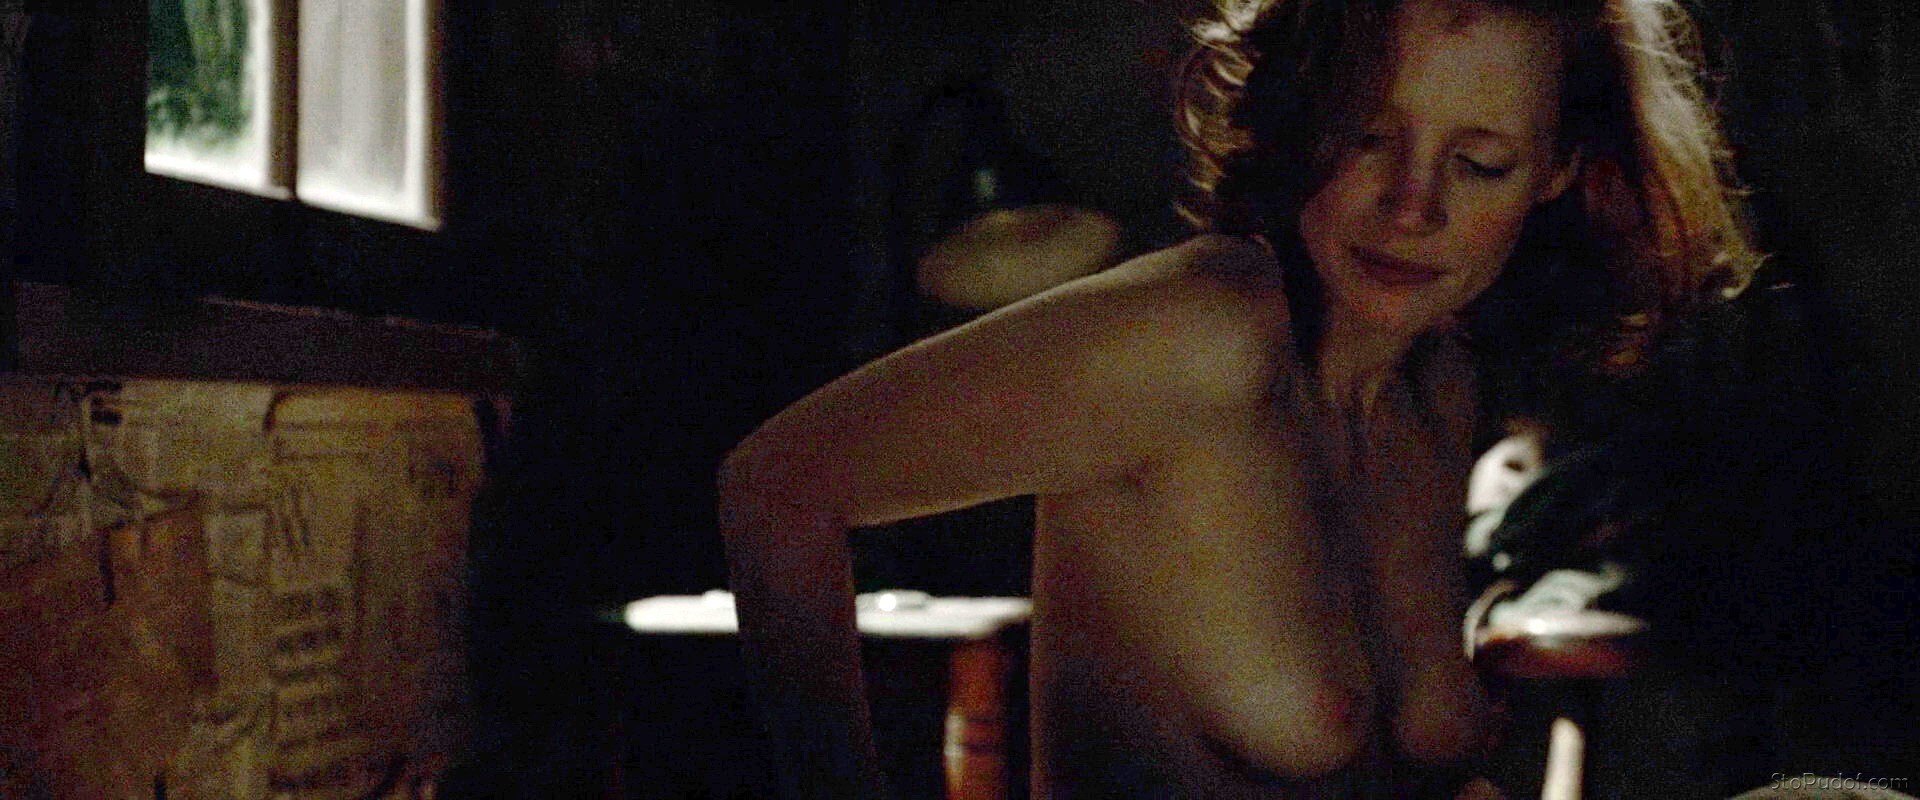 naked pics of Jessica Chastain leaked - UkPhotoSafari